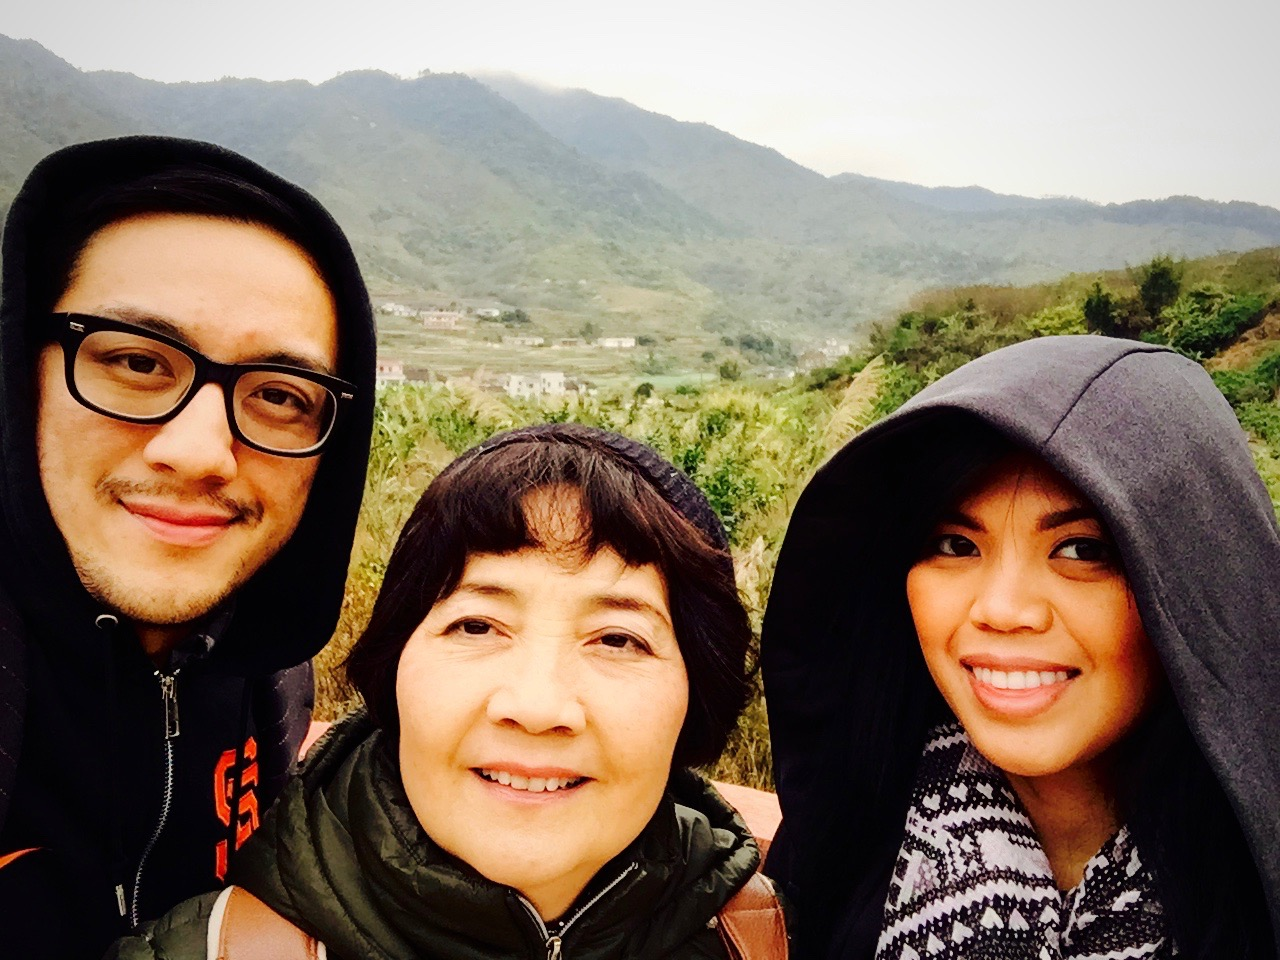 Taken from our family trip to Dave's ancestral homeland in a mountainous village in the Guangdong province of China.